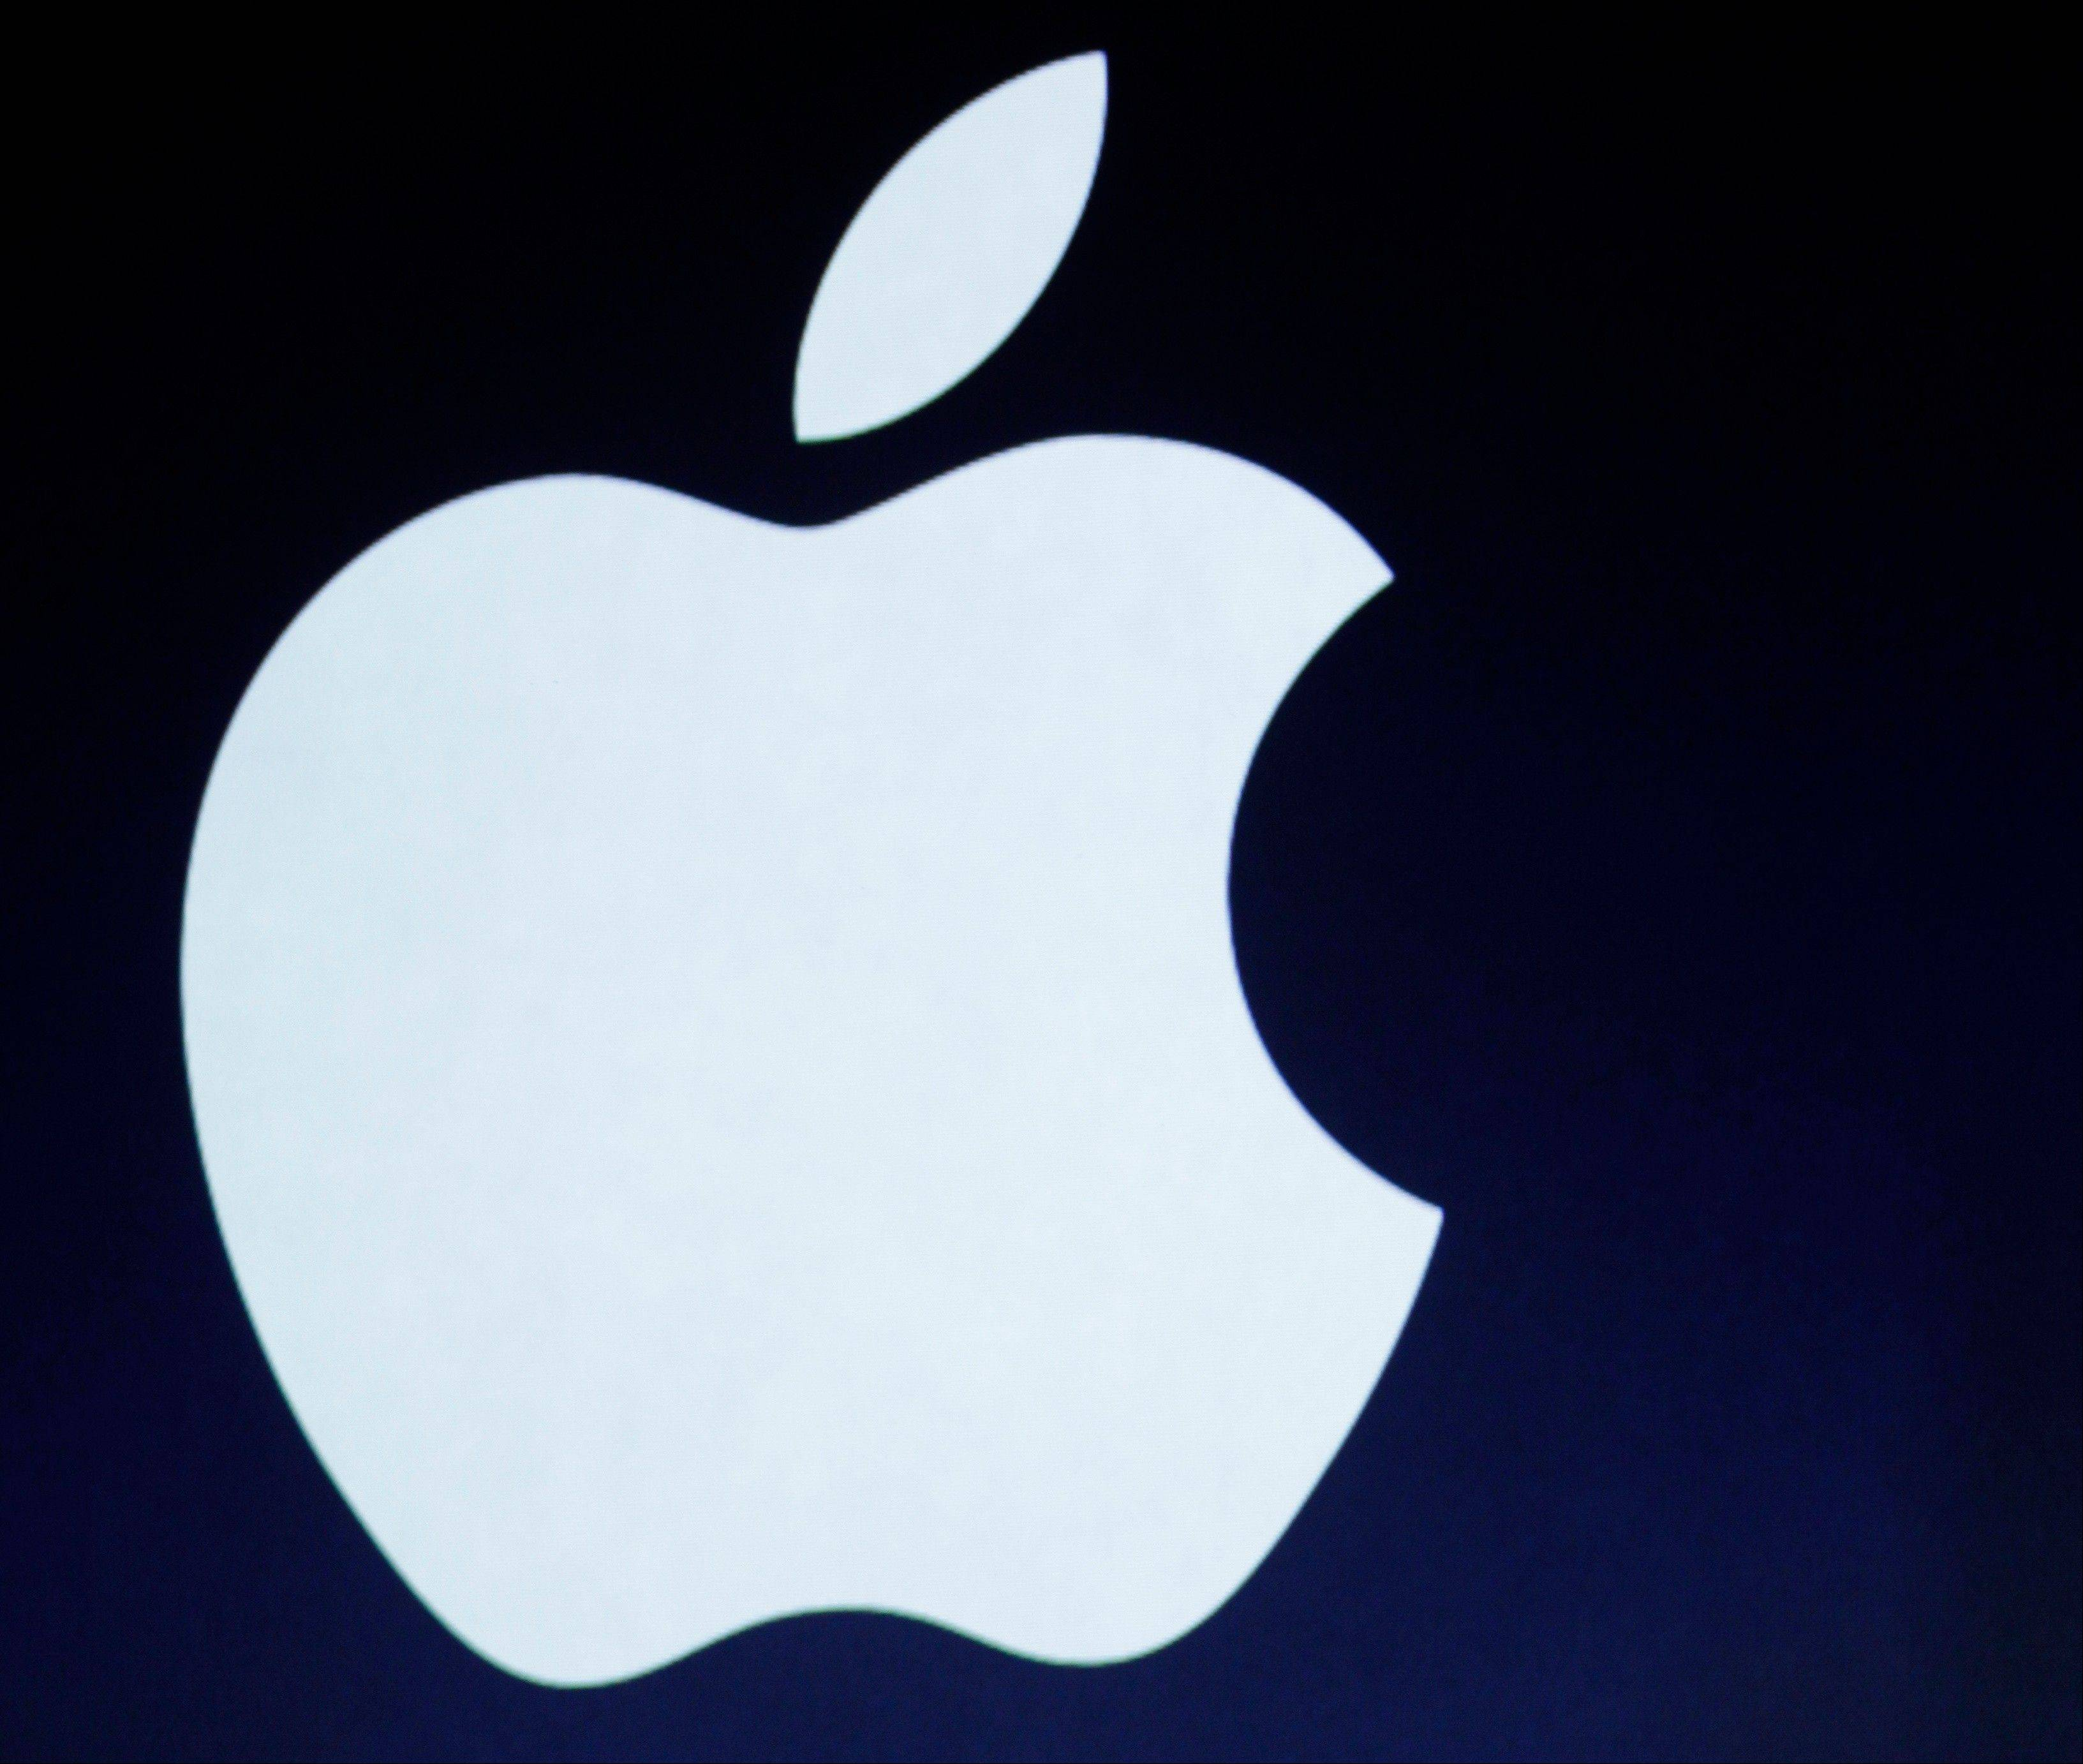 Associated Press/March 7, 2012 The Apple logo is projected during an announcement in San Francisco.